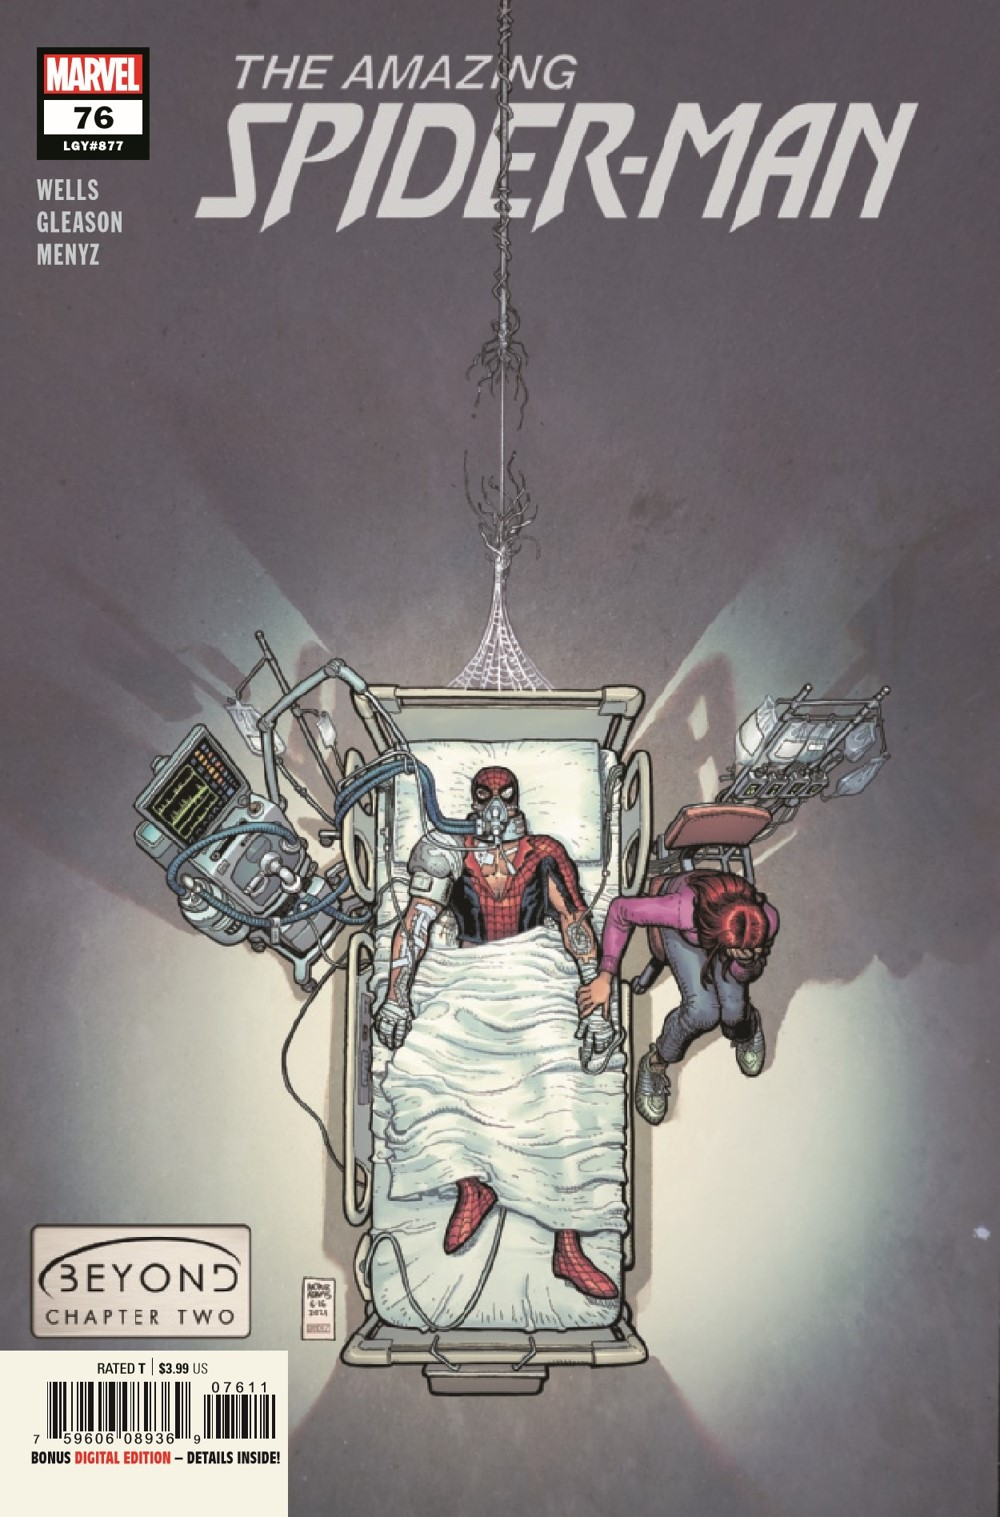 ASM2018076_Preview-1 ComicList Previews: AMAZING SPIDER-MAN #76